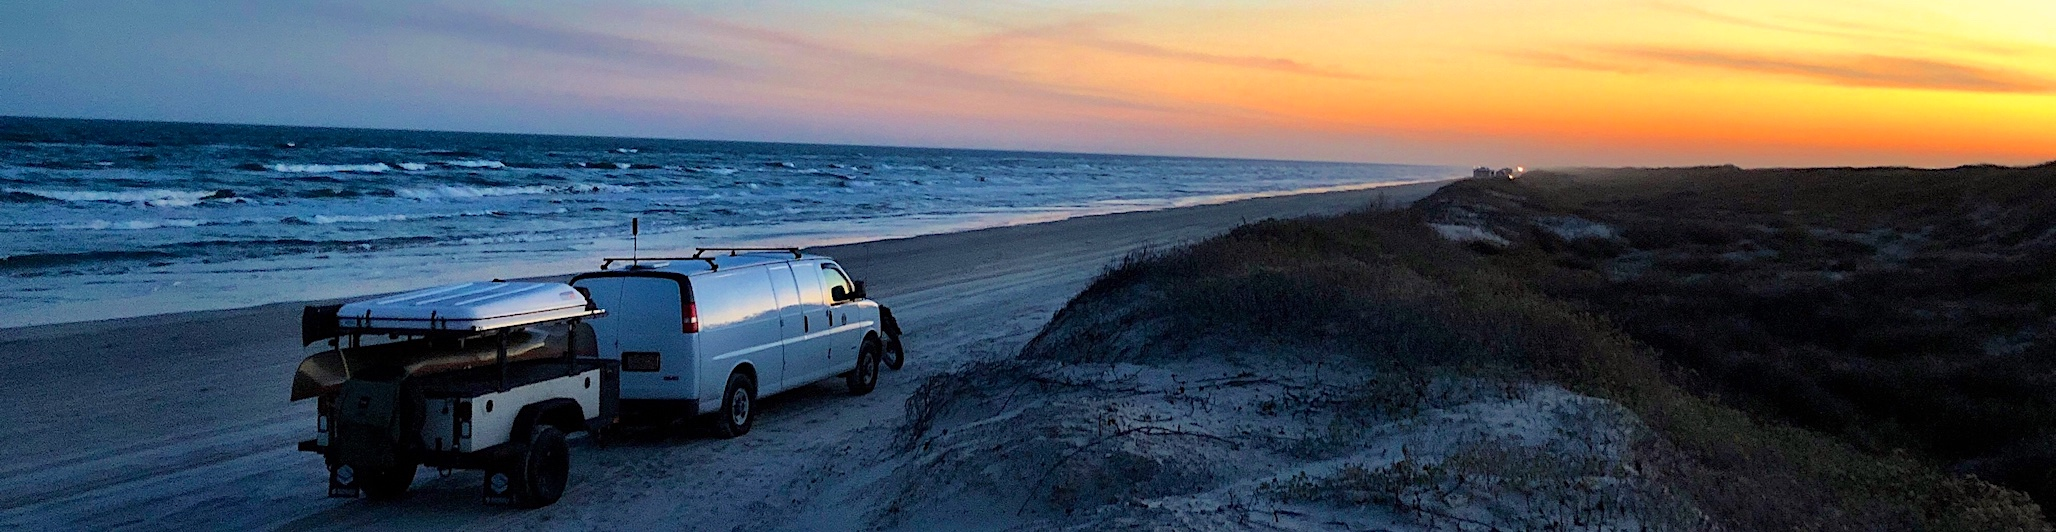 Roadude - On the Road In America: Van and camping trailer on Gulf of Mexico beach at sunset